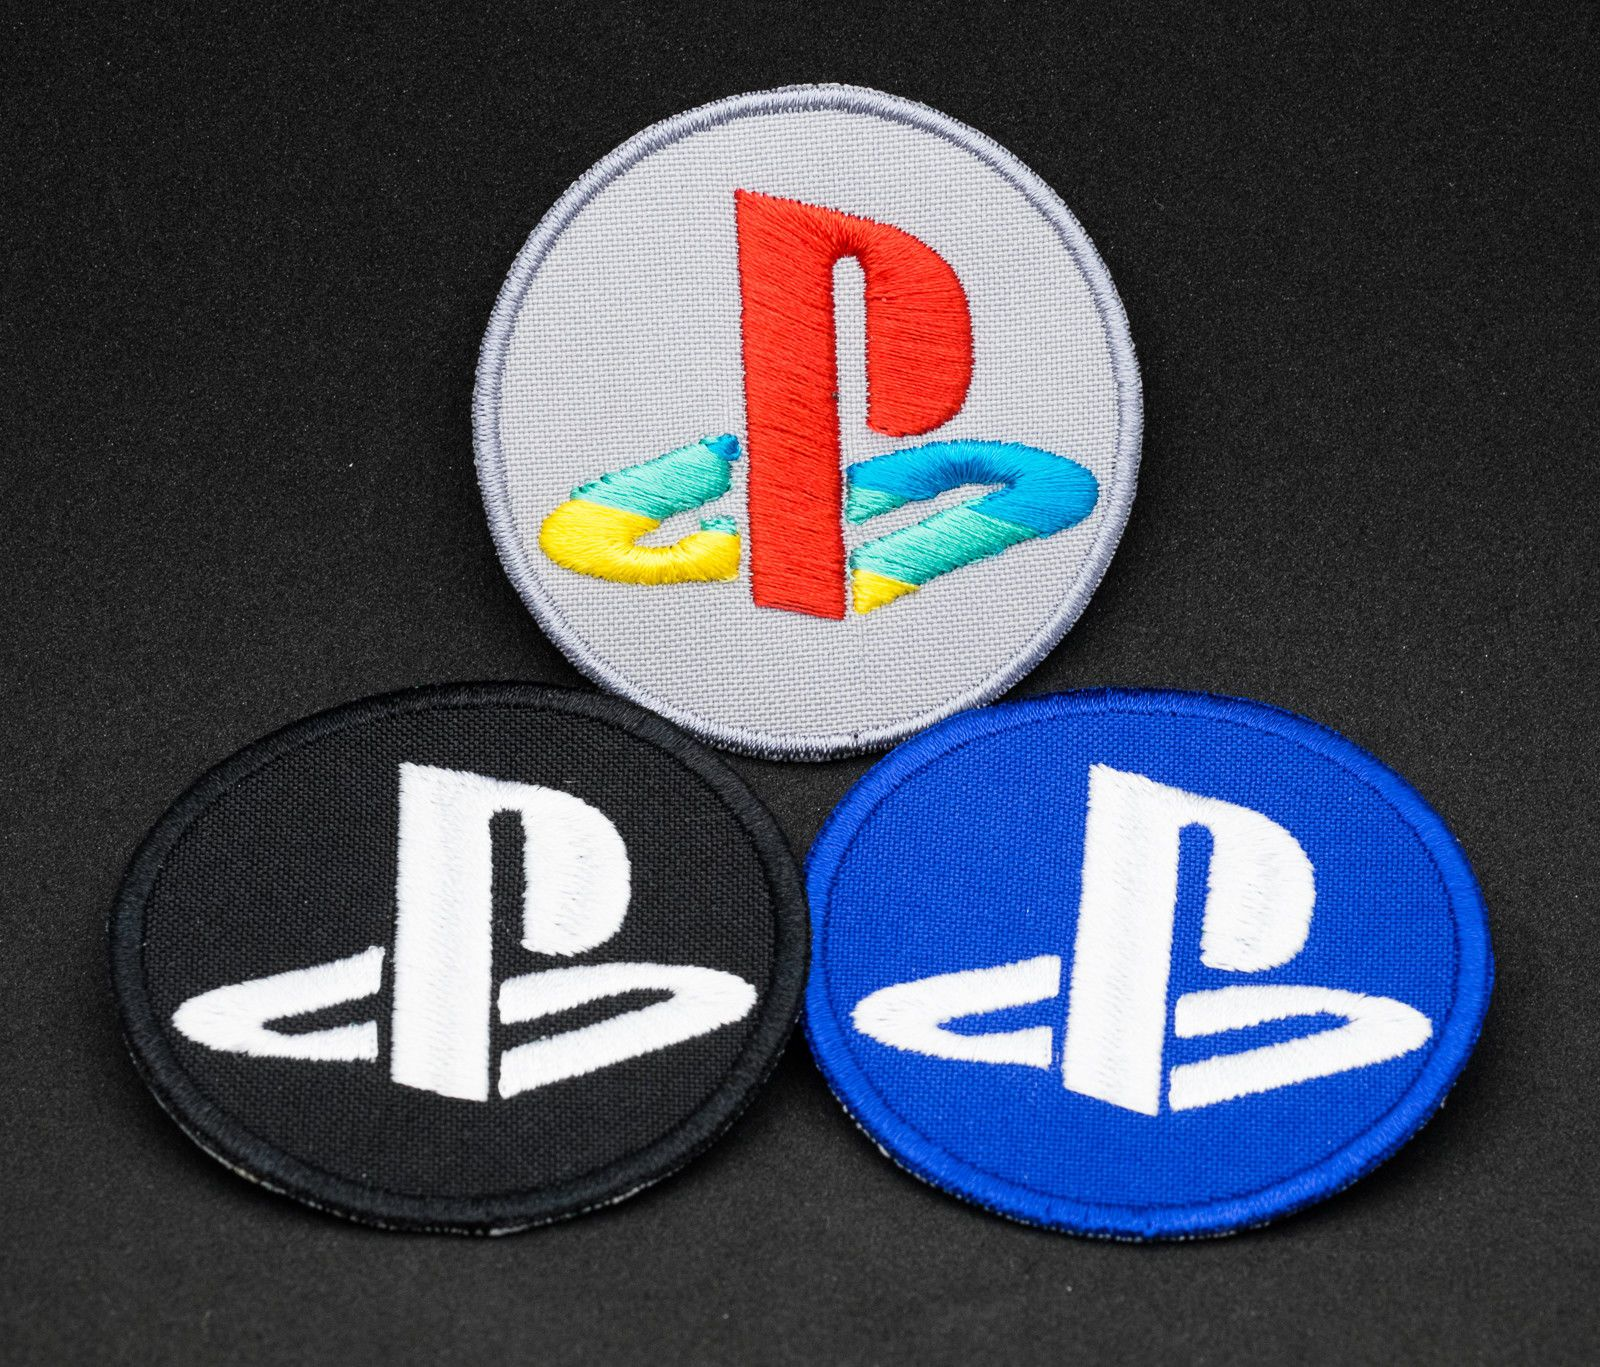 4 99 embroidered patch badge sony playstation iron on sew on ps4 ps one ebay